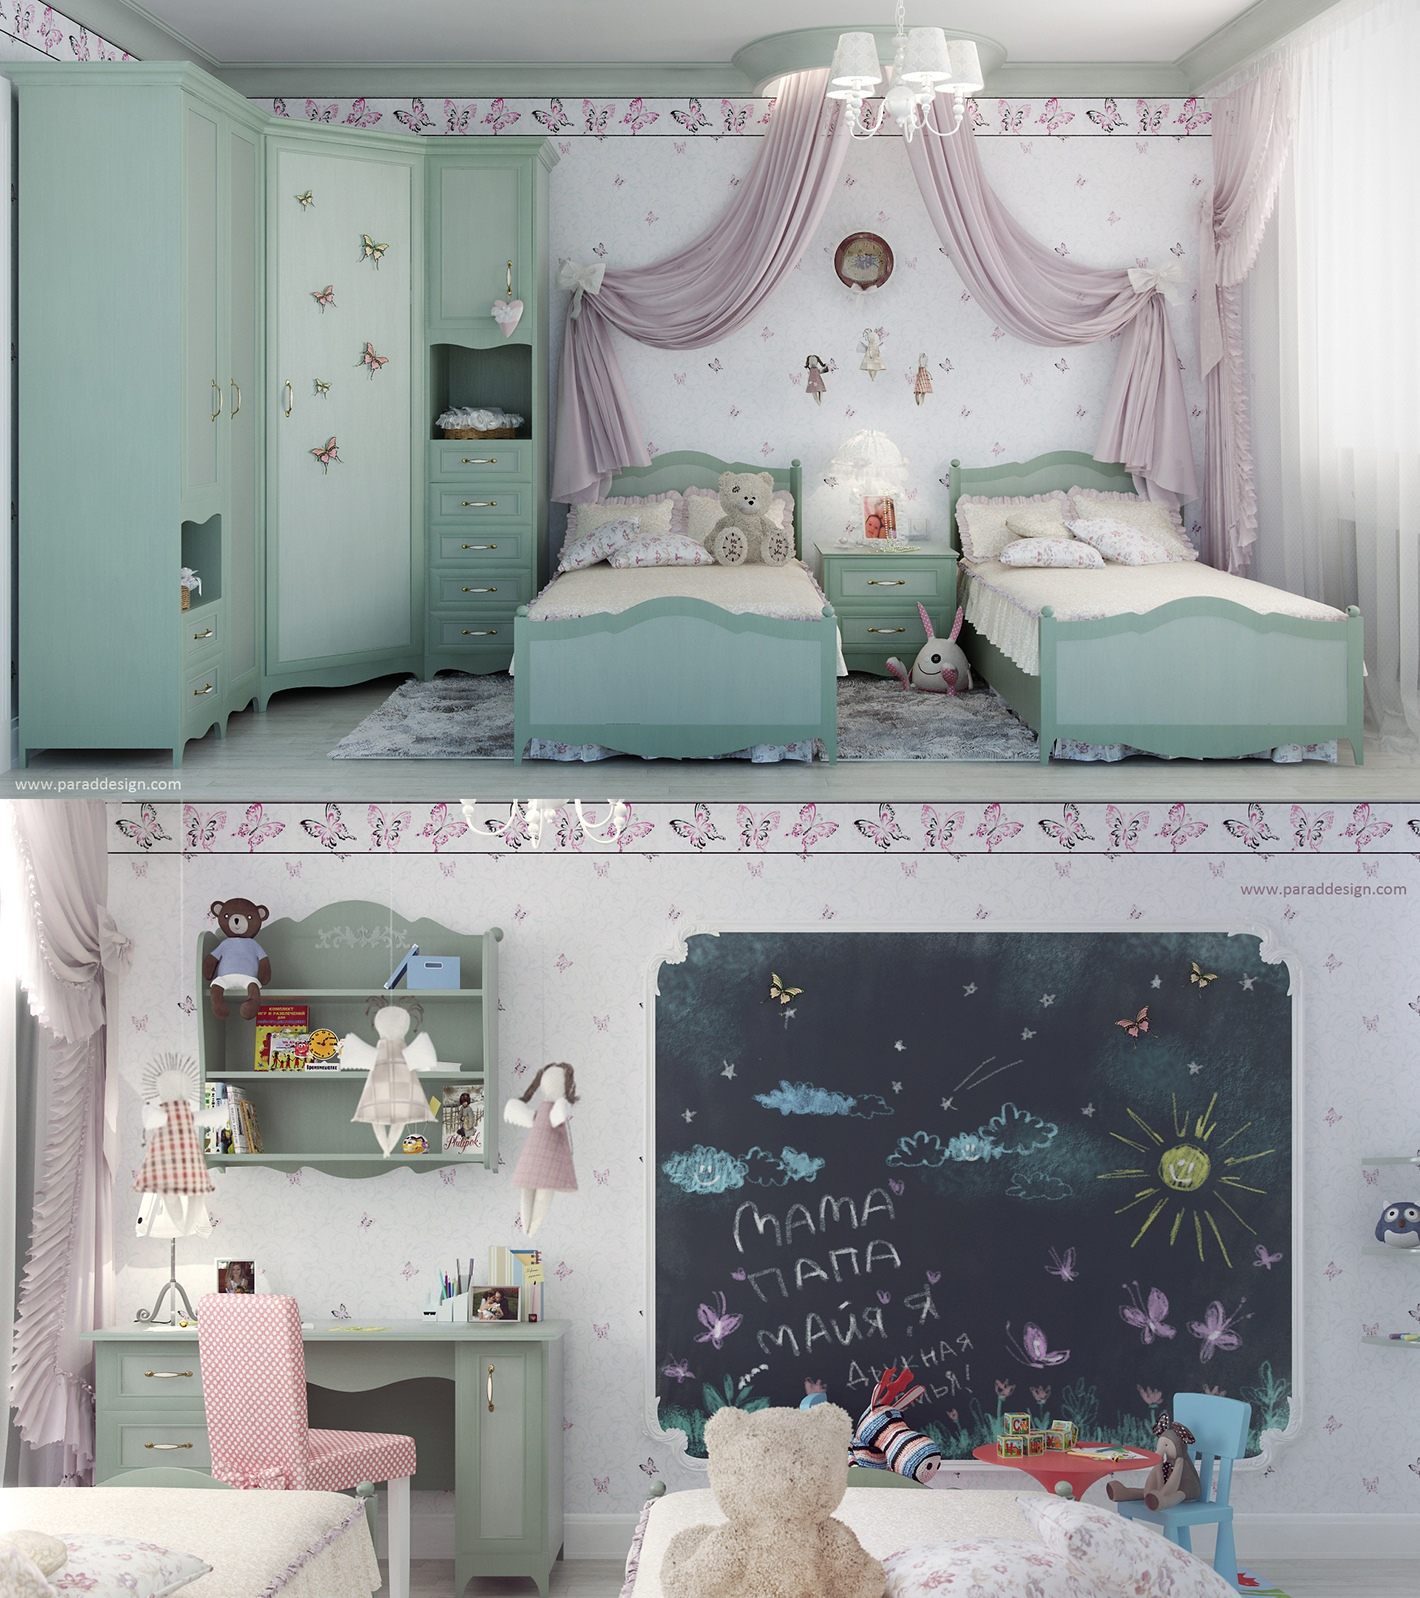 2 little girls bedroom 7 interior design ideas - Little girls bedrooms ...